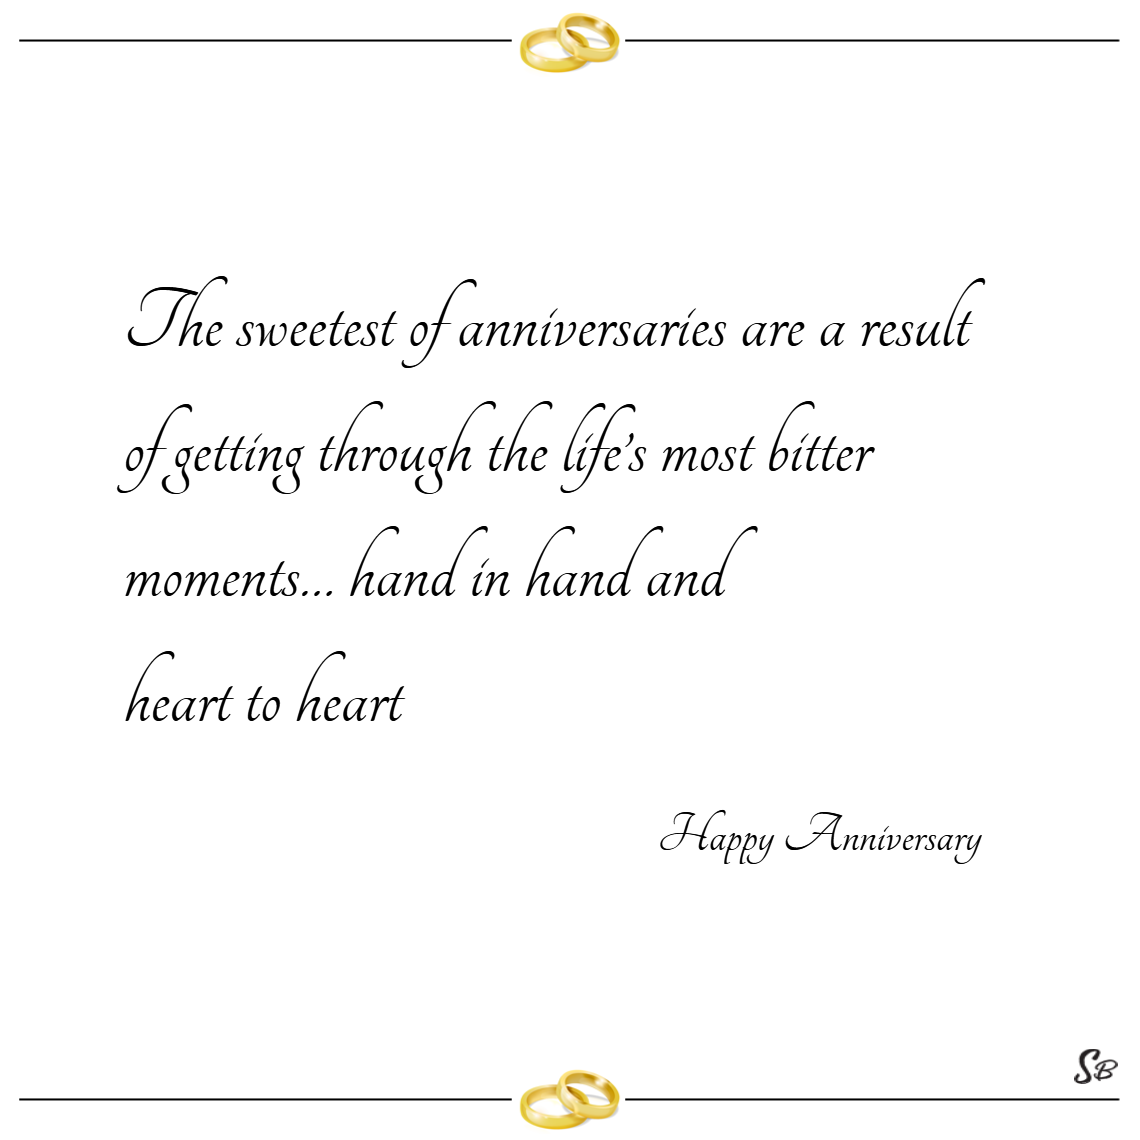 The sweetest of anniversaries are a result of getting through the life's most bitter moments… hand in hand and heart to heart